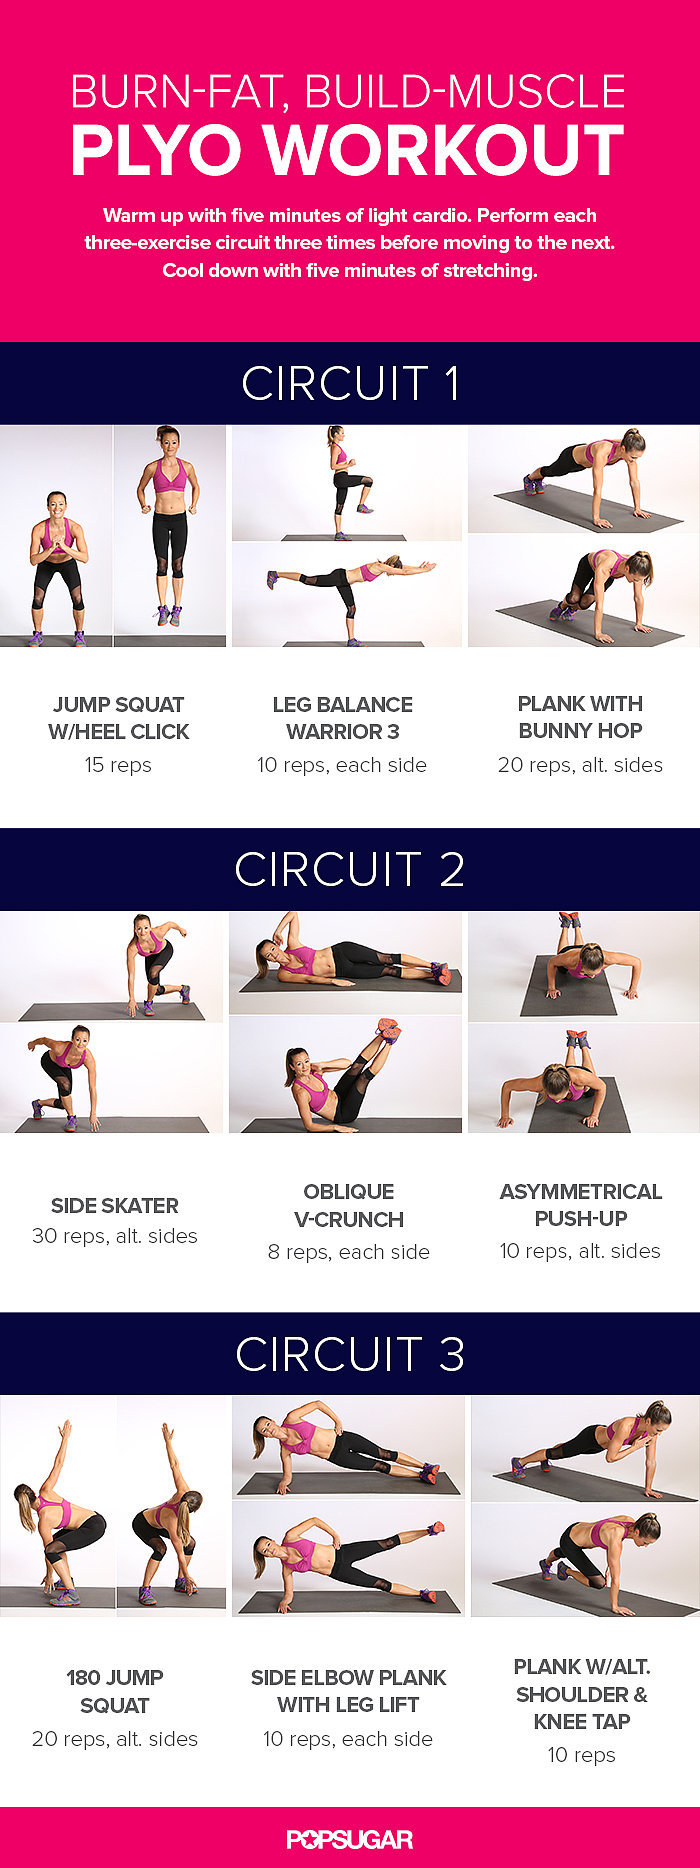 The Workout | Burn-Fat, Build-Muscle Plyo Workout ...